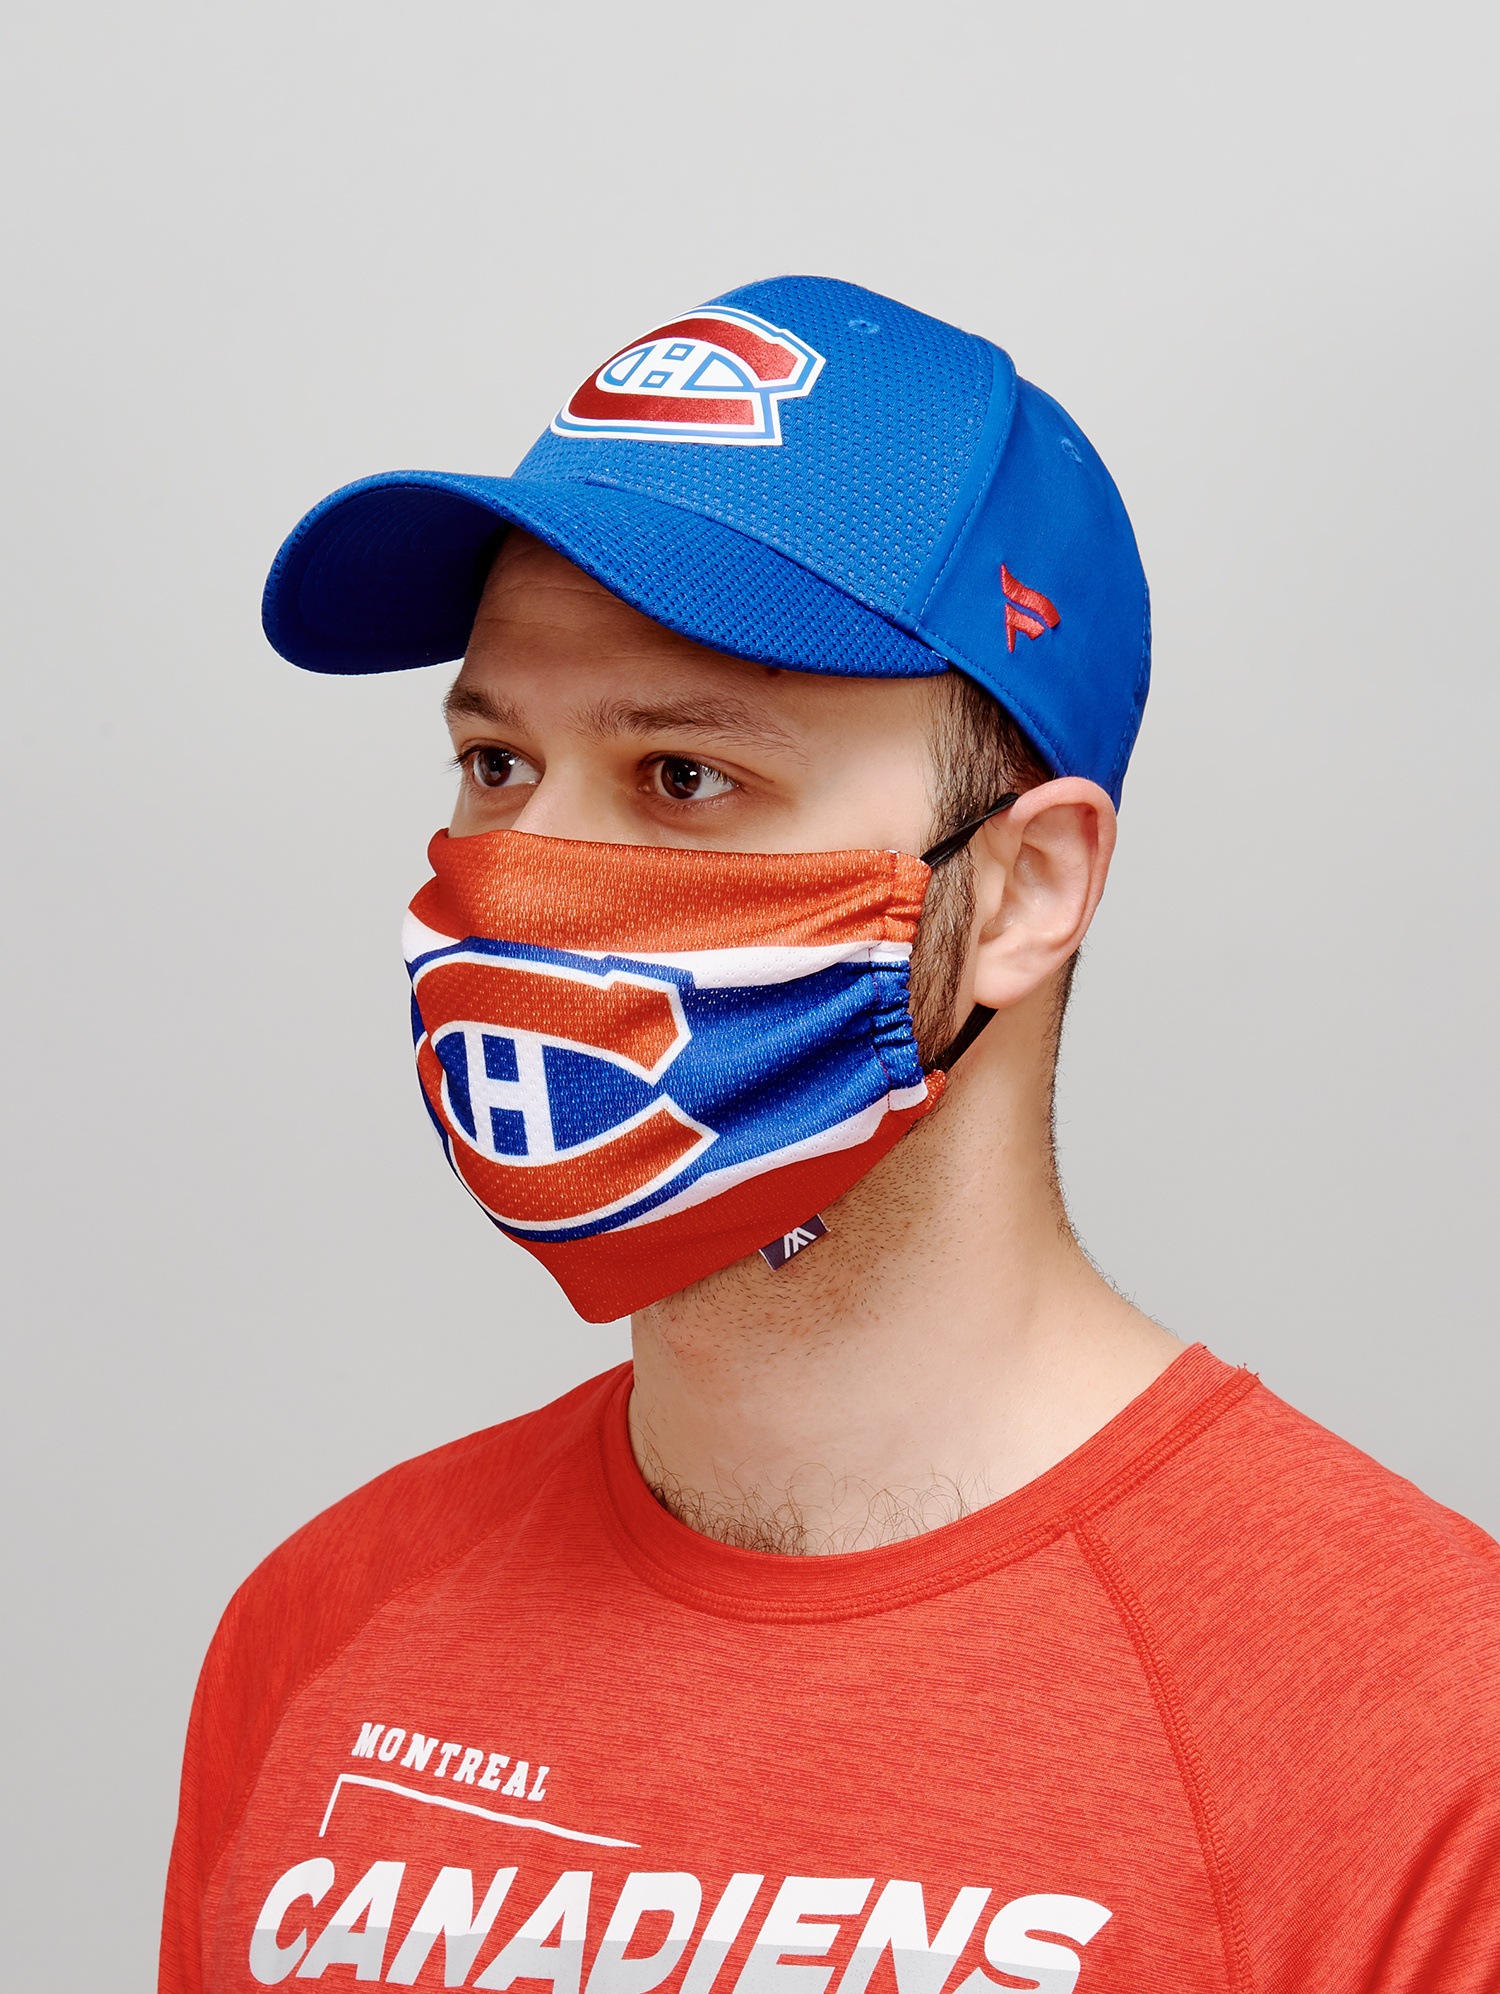 Montreal Canadiens Jersey Face Cover Tricolore Sports